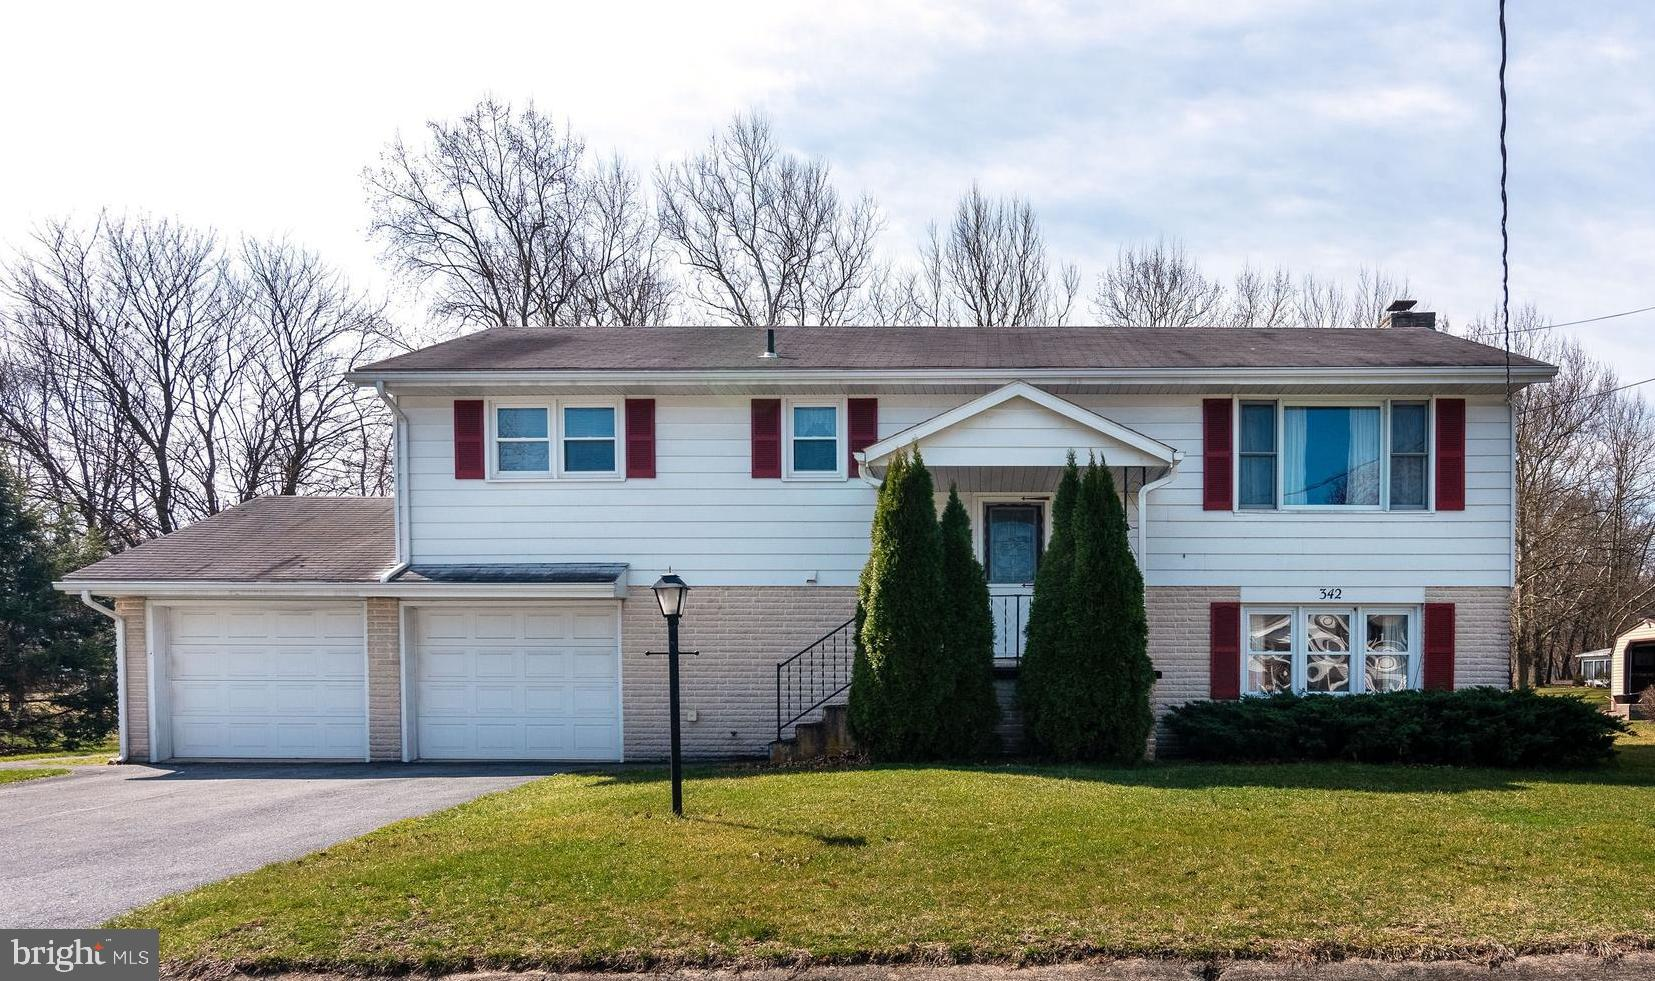 342 FRY AVENUE, ROBESONIA, PA 19551